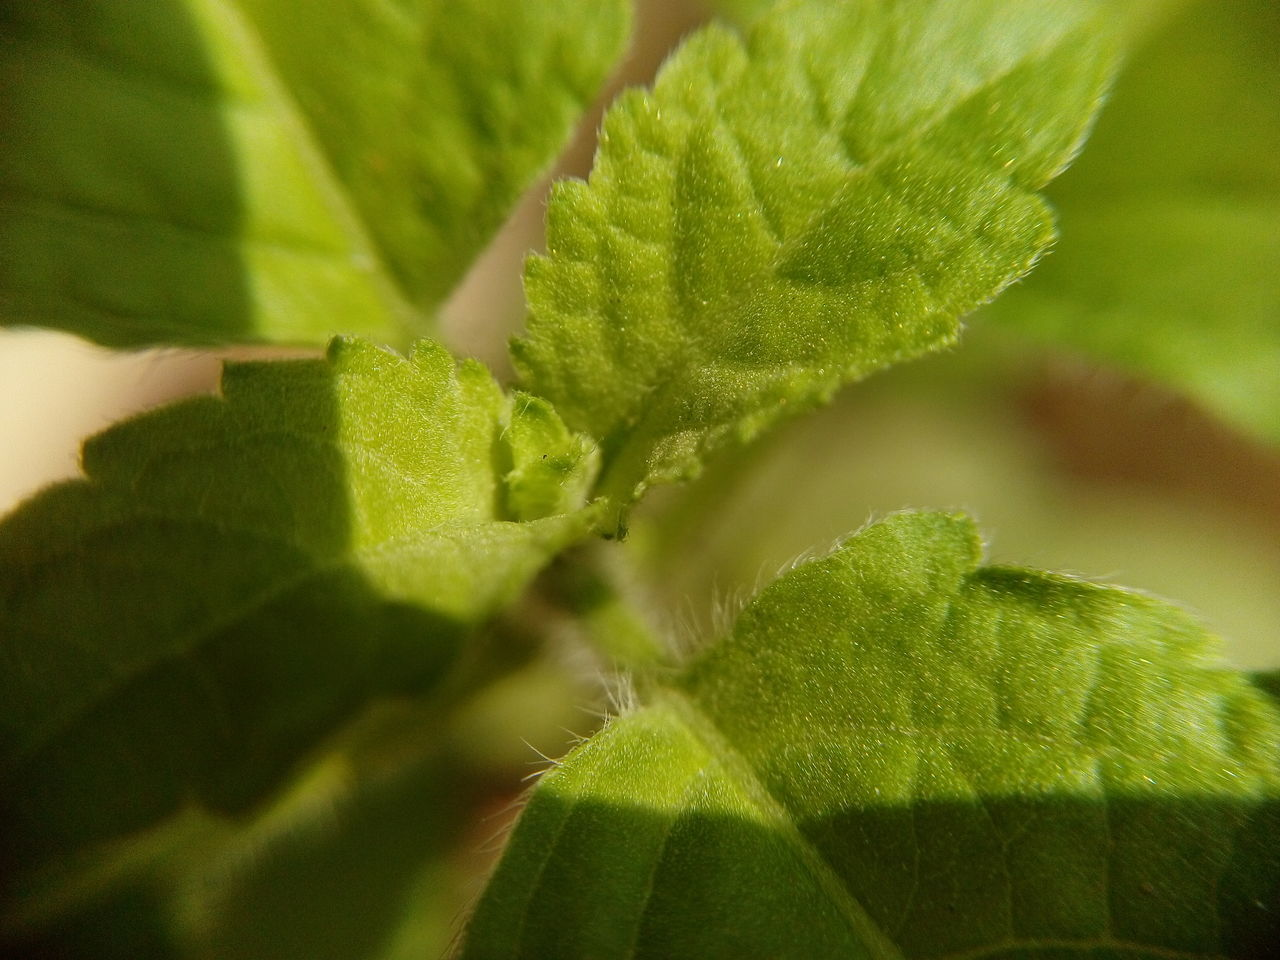 Beauty In Nature Close-up Day Green Color Growth Leaf Nature No People Outdoors Plant